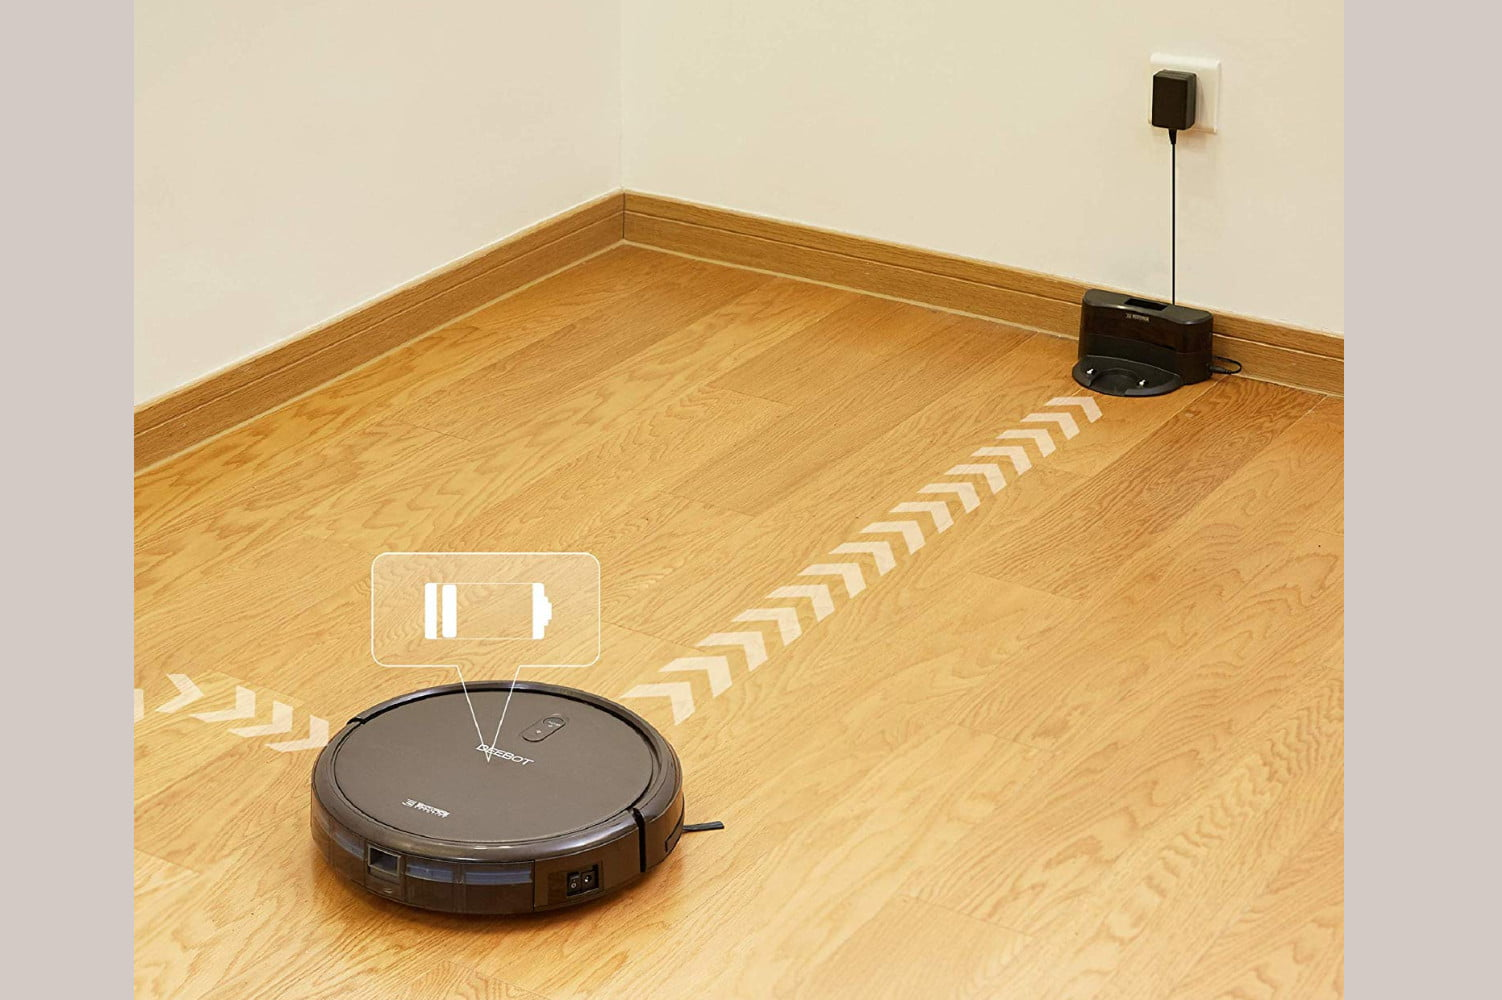 amazon 24 hour deal best price ever on ecovacs deebot n79s robot vac vacuum cleaner 5  1